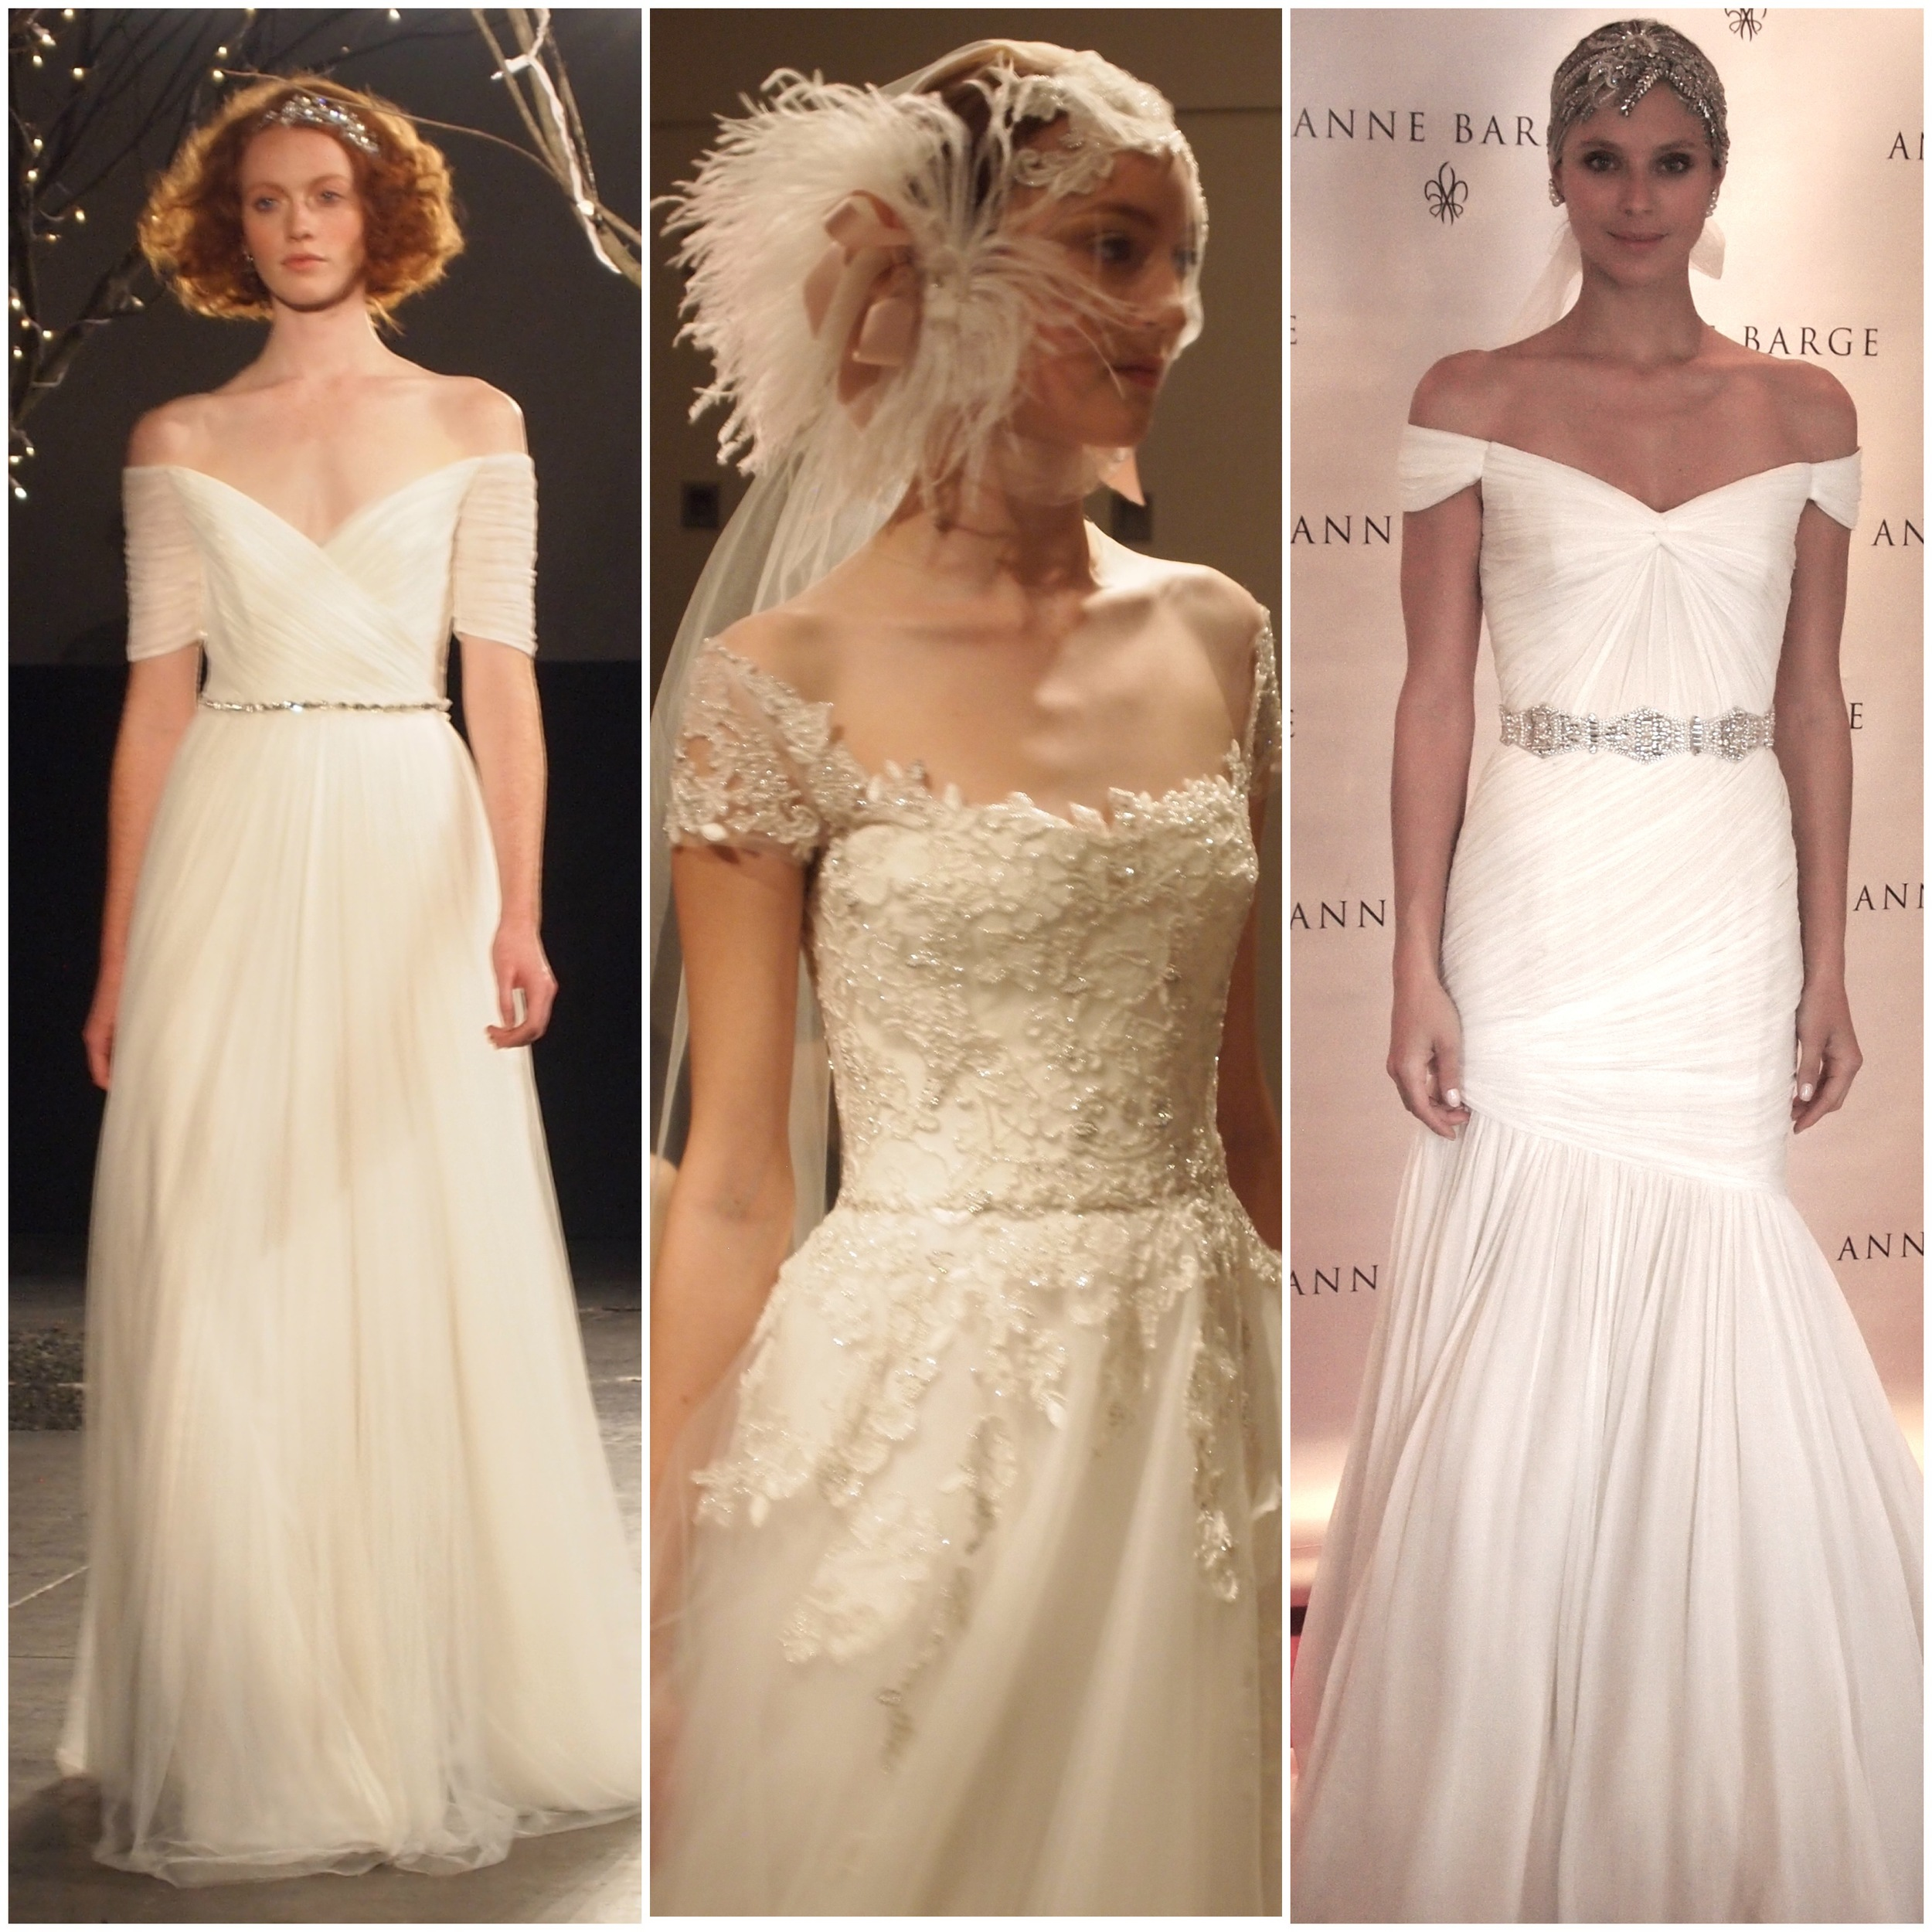 Left to Right: Jenny Packham, Reem Acra, Anne Barge